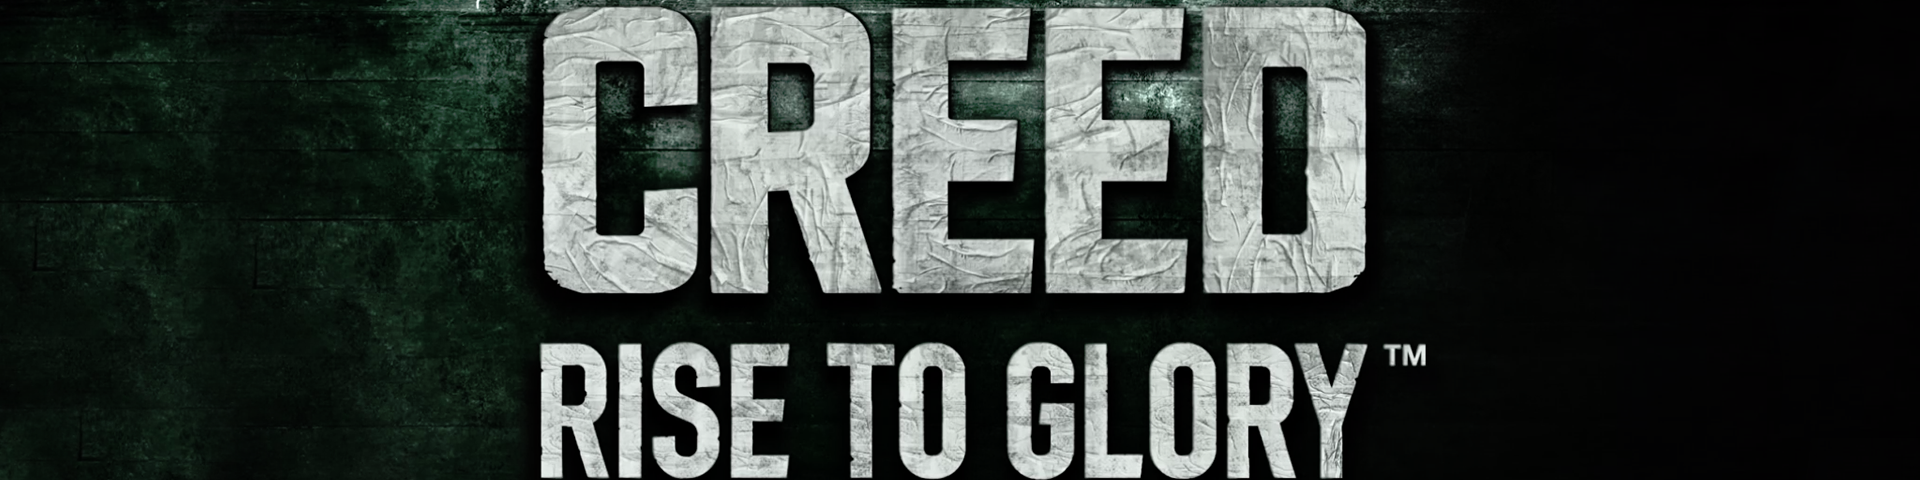 Creed Rise To Glory Review Header.png